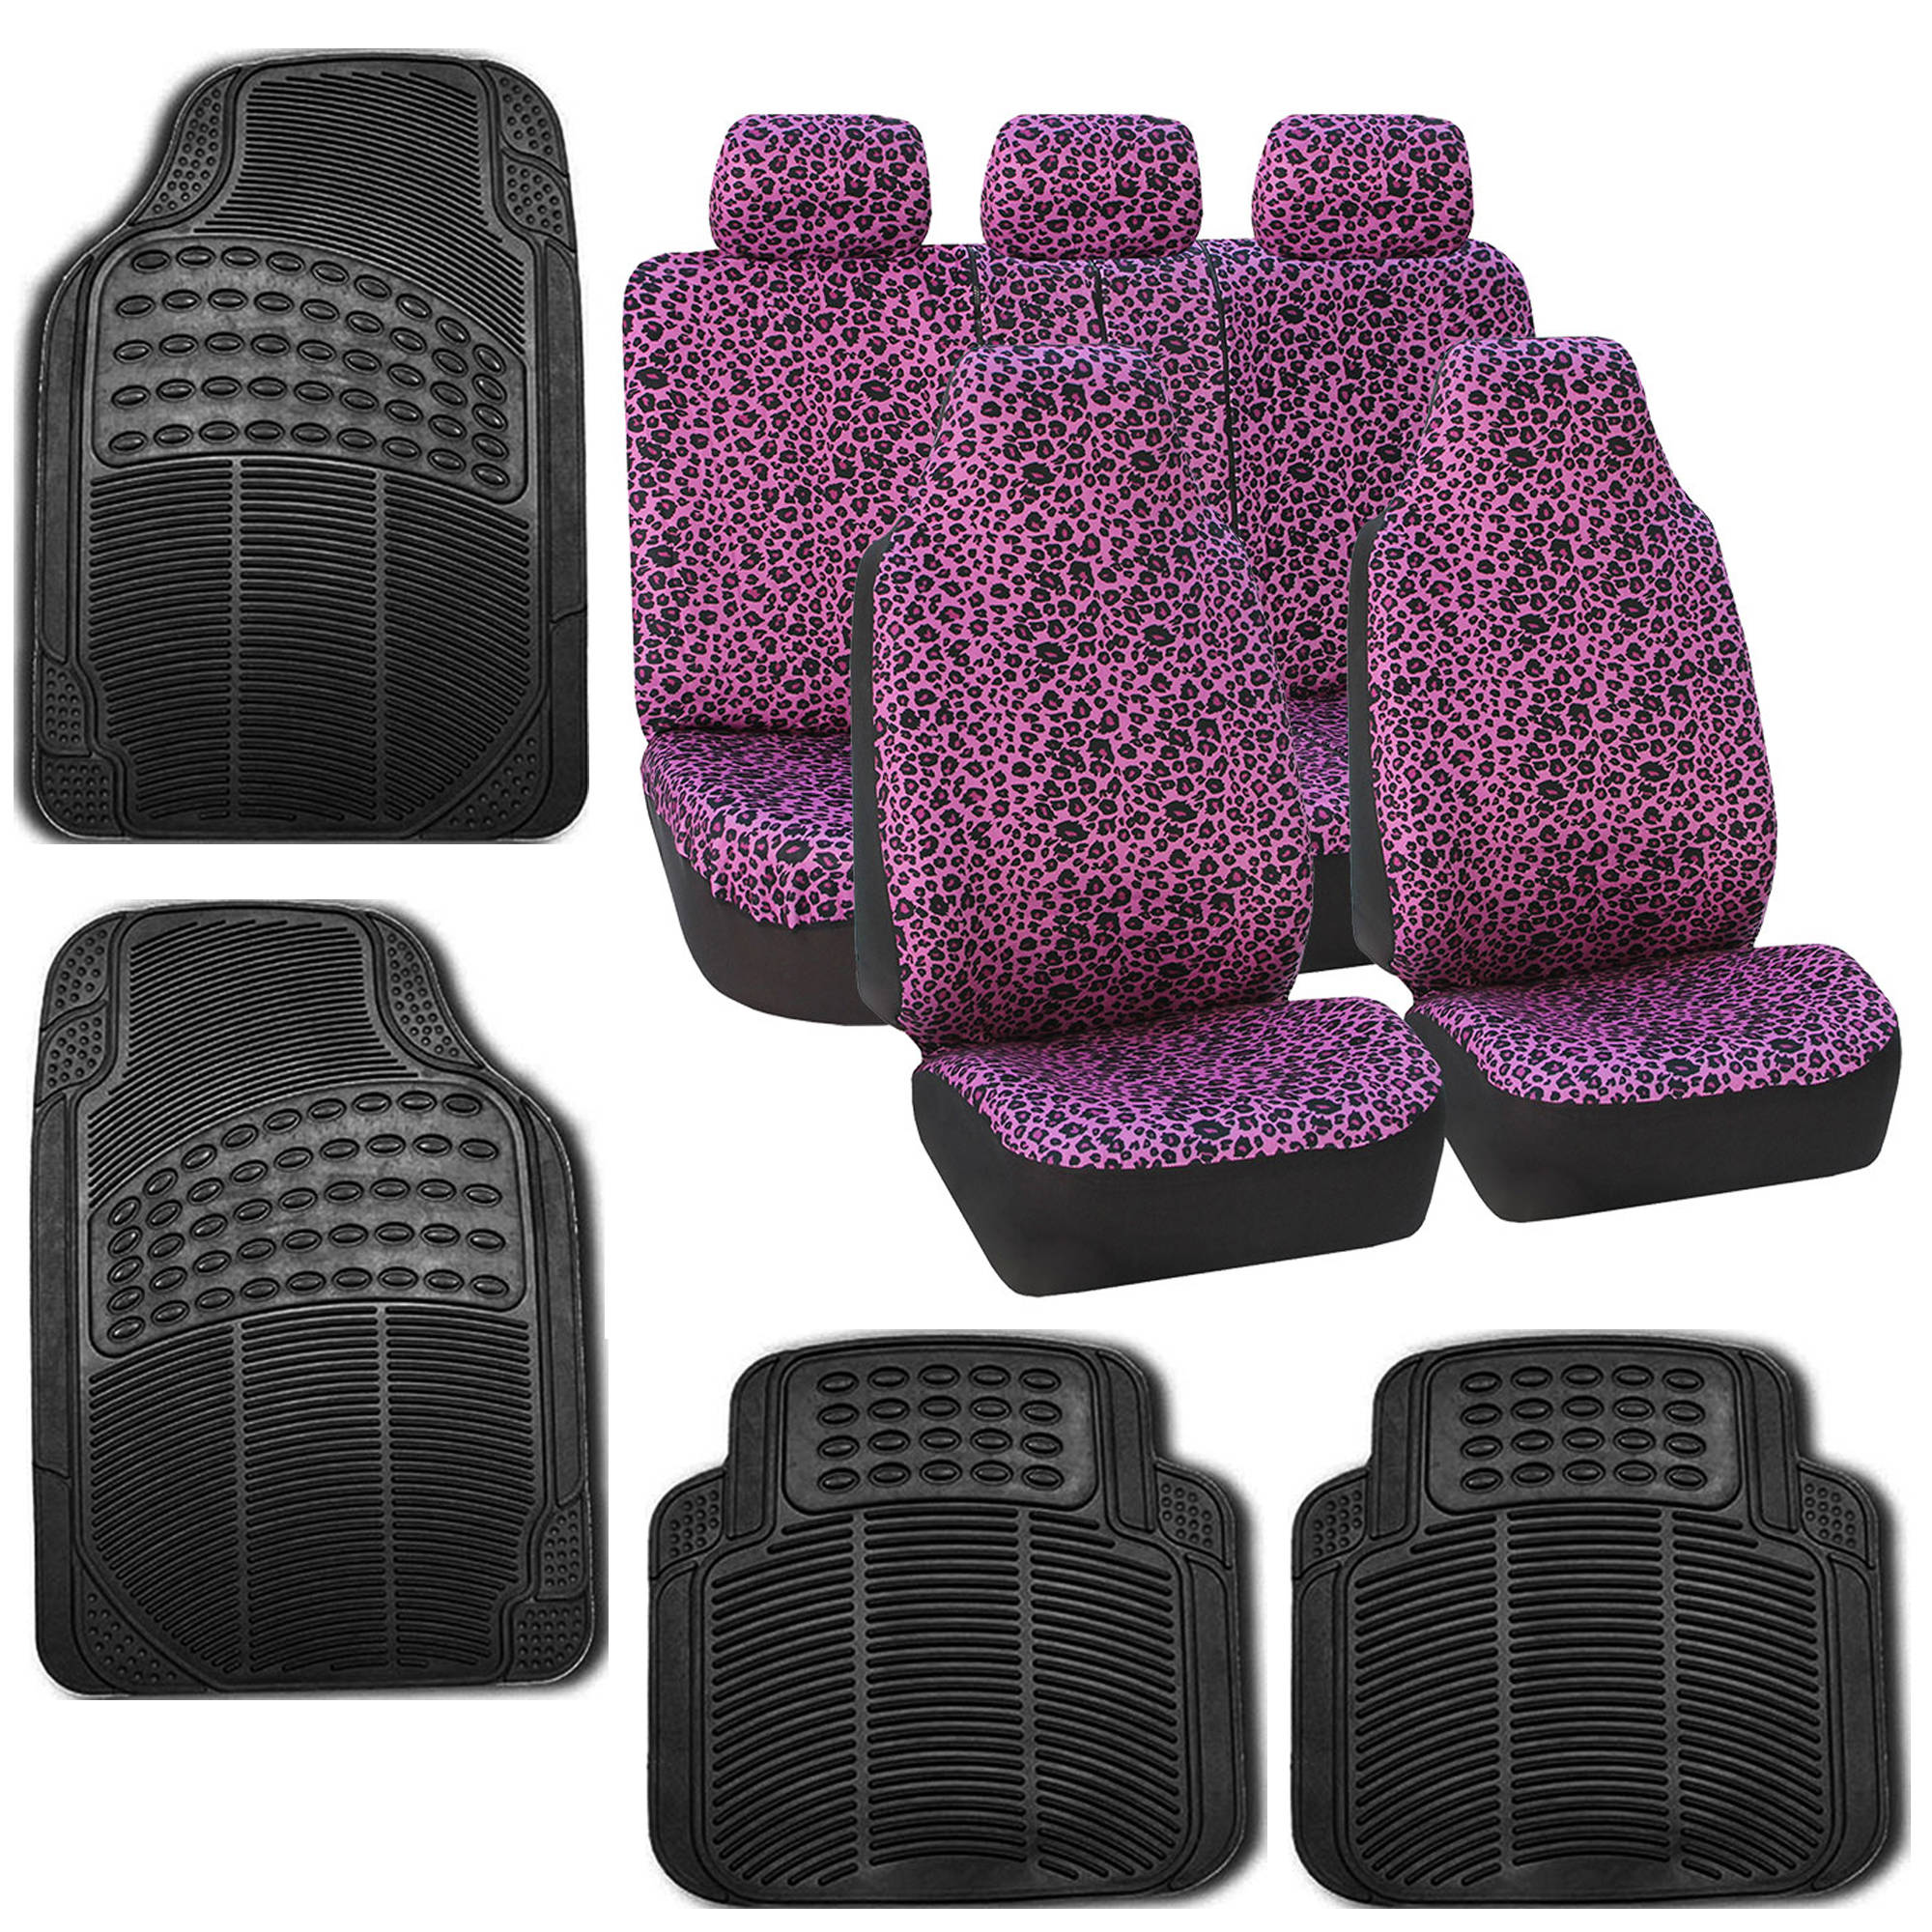 black mats rubber rakuten seat auto pink for cover universal mat product shop floor combo car bestfh w